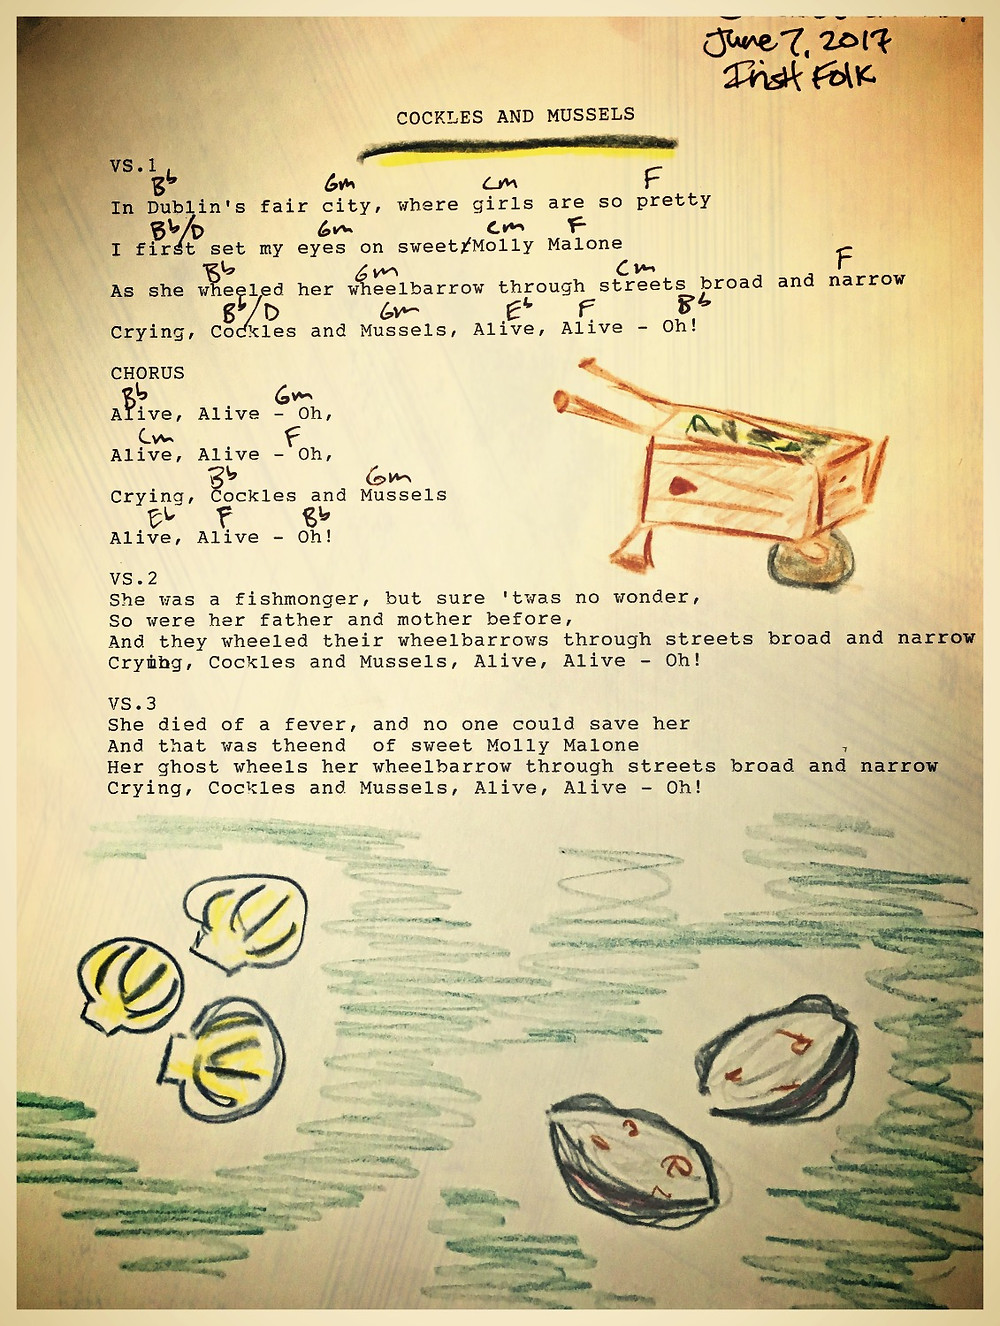 Cockles and Mussels music & lyrics